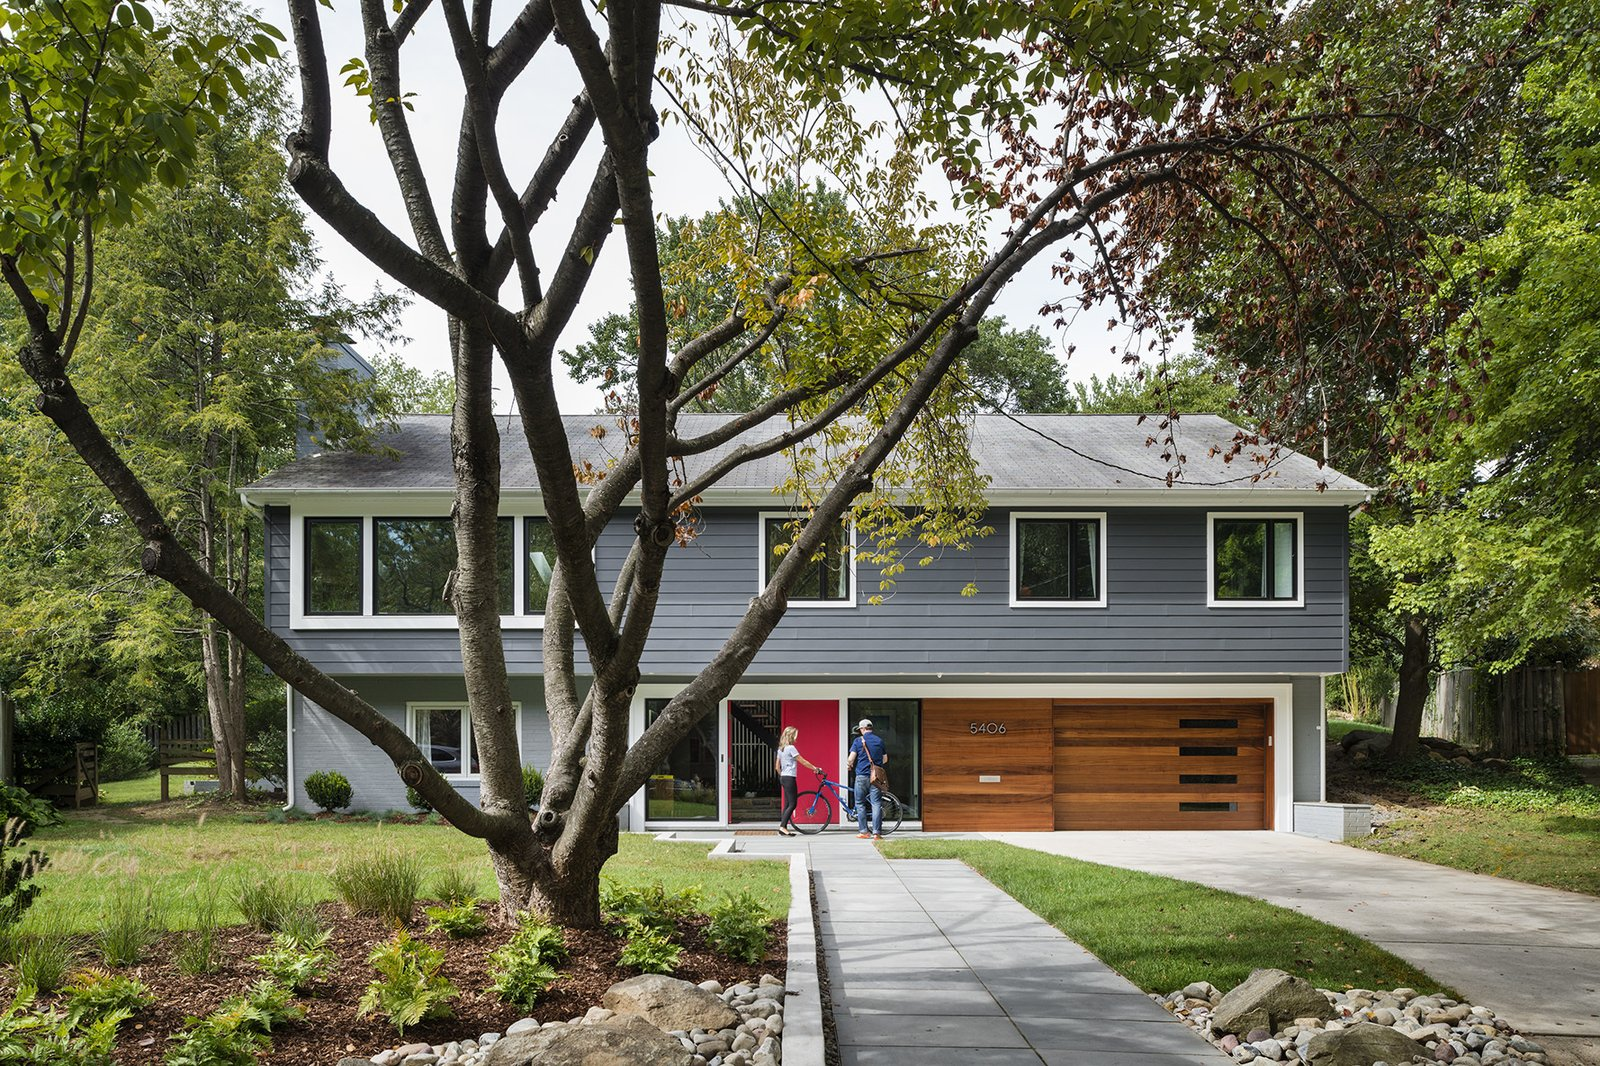 """Front Yard, Trees, Shrubs, Grass, Hardscapes, Gardens, Walkways, Exterior, House, and Wood """"We looked at so many colonials and couldn't imagine what we'd do with all the tiny rooms,"""" says Dianne Bruning, who with her husband, David Owen, enlisted architect Lou Balodemas to update a 1968 home outside of Chevy Chase, Maryland.  Exterior Grass Wood Photos from Minor Adjustments"""